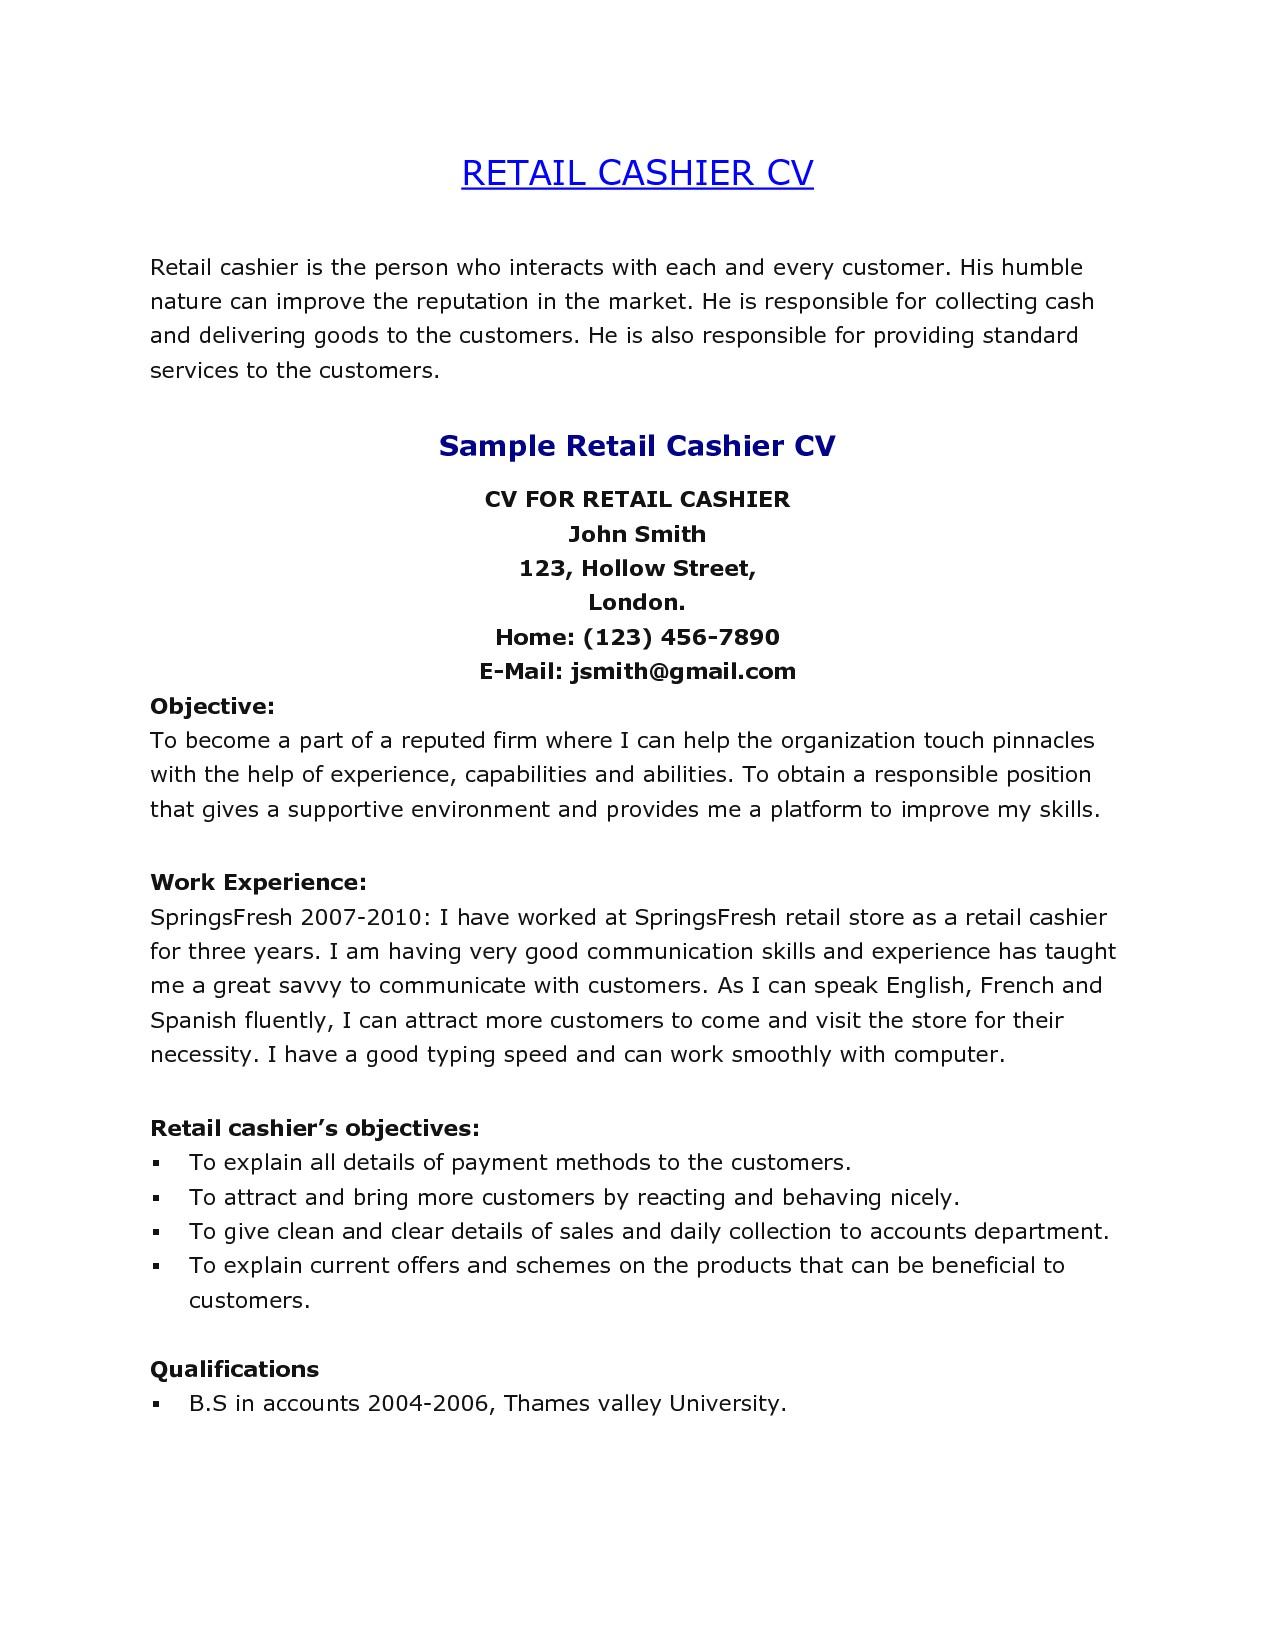 Sample Resume for Store Clerk Sample Resume for Store Clerk Resume Ideas